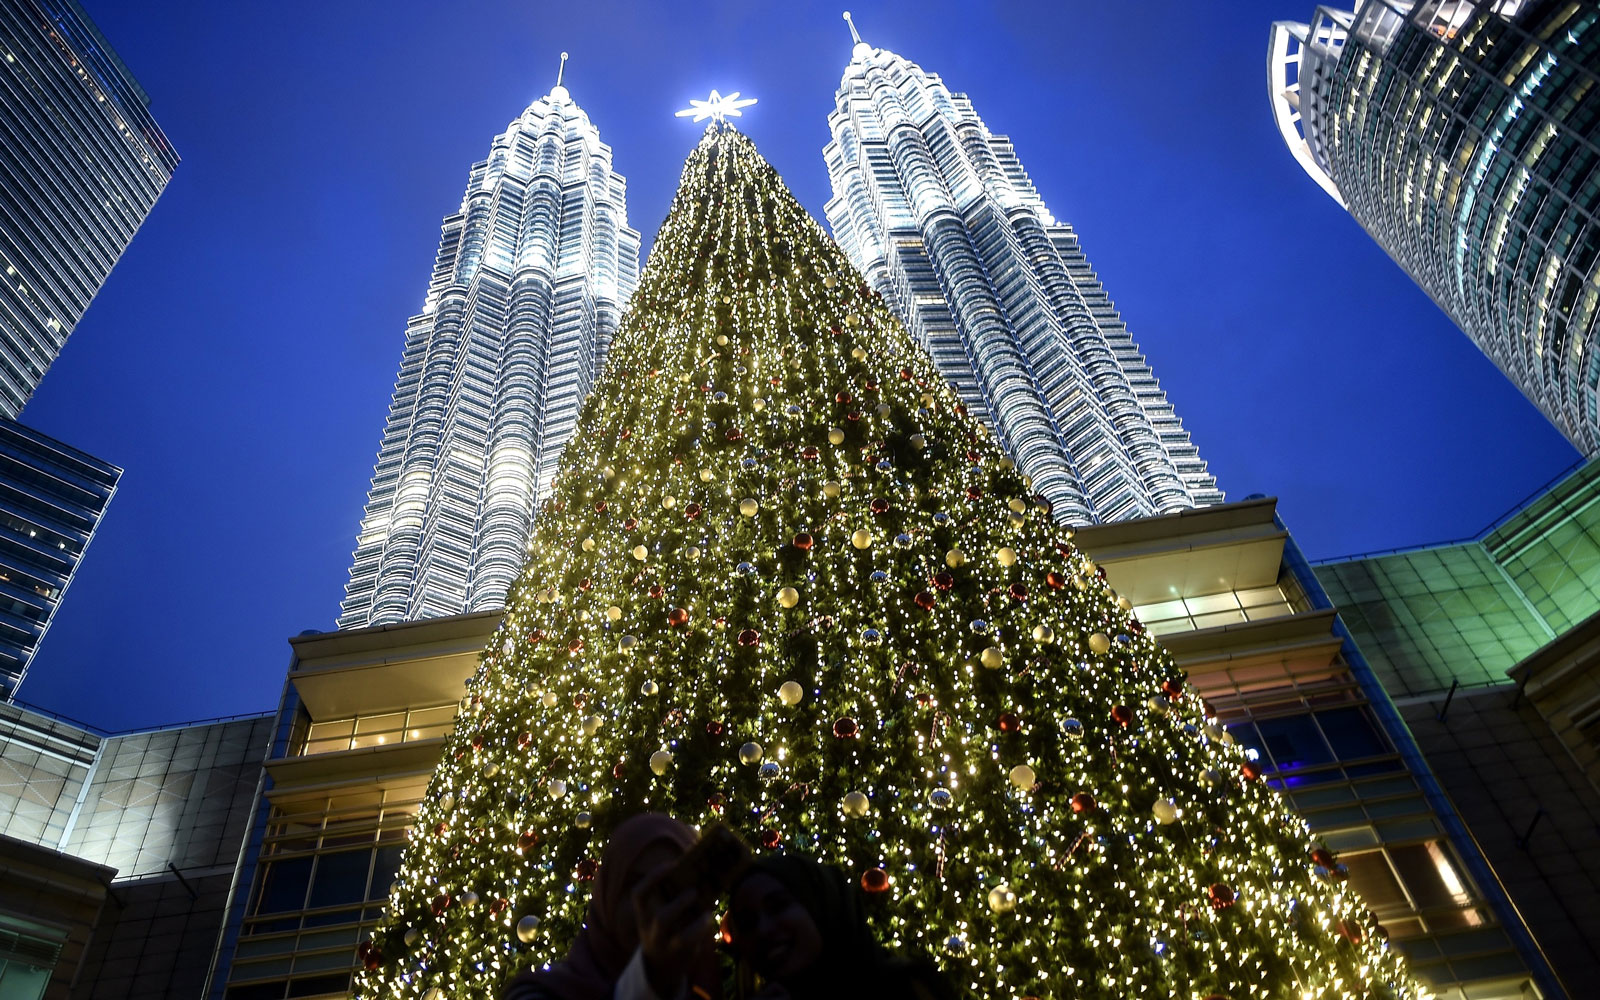 The Cities Where It's Most Expensive to Spend Christmas